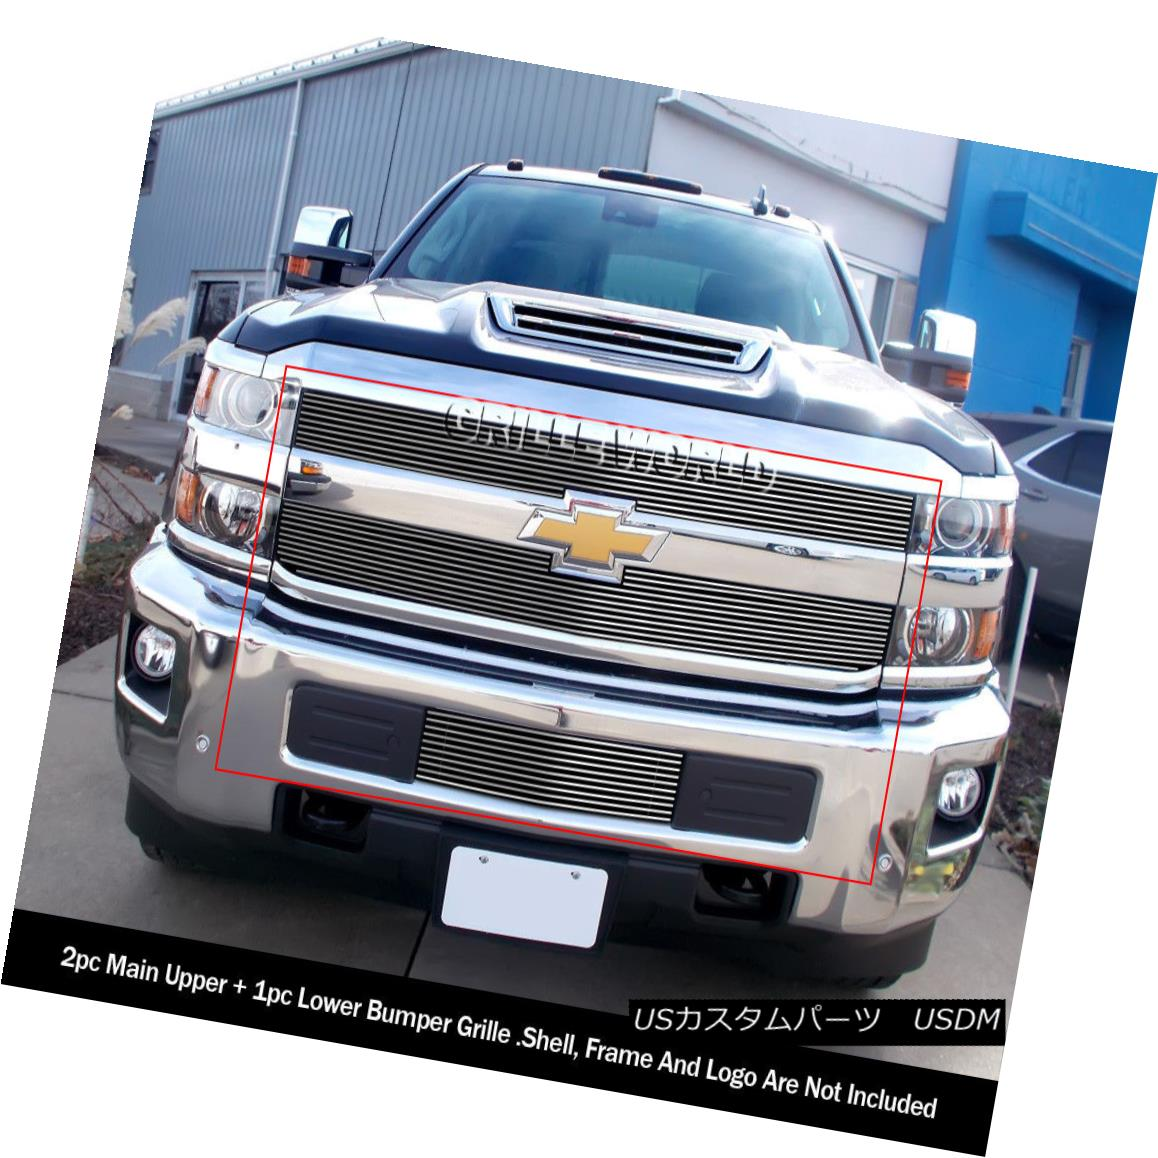 グリル For 2015-2018 Chevy Silverado 2500HD/3500HD Billet Grille Combo 2015-2018 Chevy Silverado 2500HD / 3500HDビレットグリルコンボ用